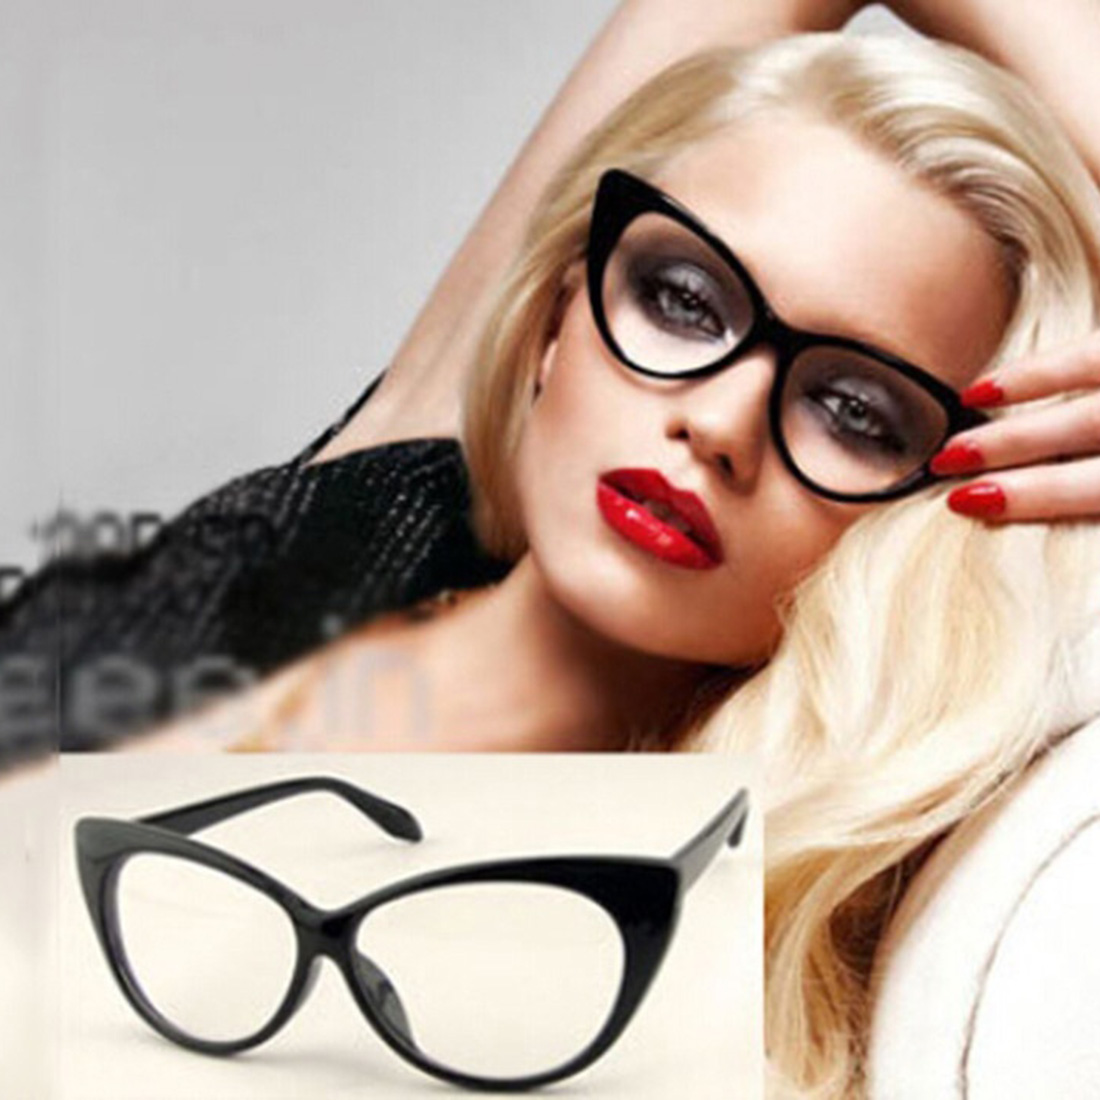 dc534c39a Buy glasses cat eye frame and get free shipping on AliExpress.com